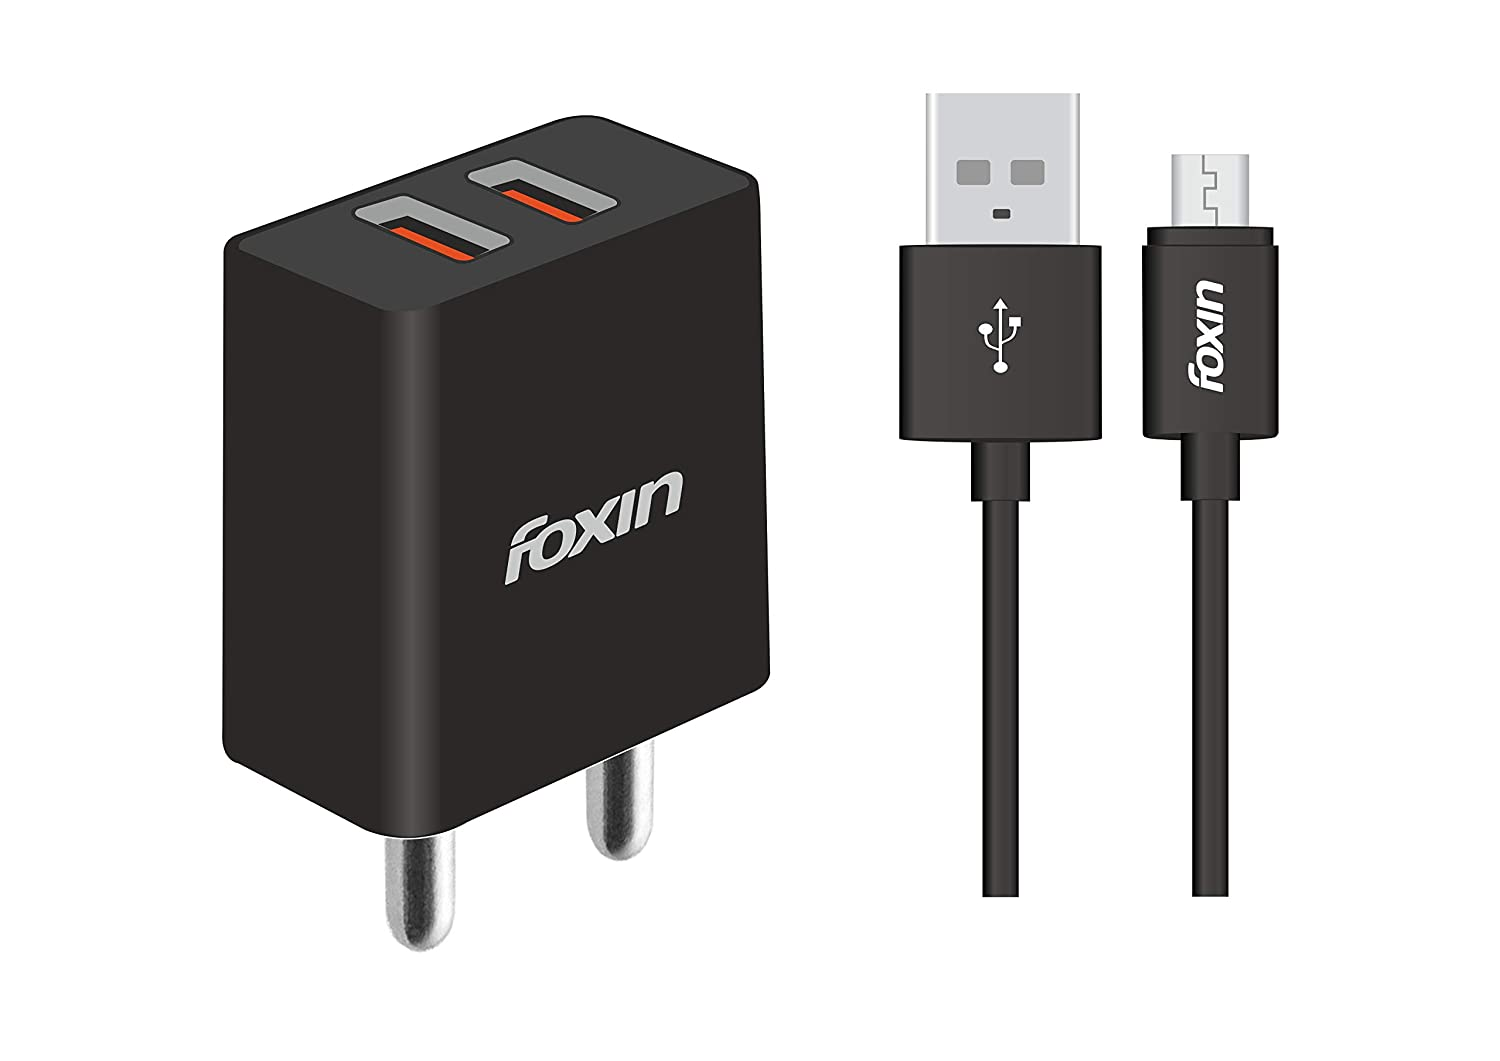 Foxin FPA-226 Dual Port USB Smart Adapter with 2.4 Amp Power Supply (Black)